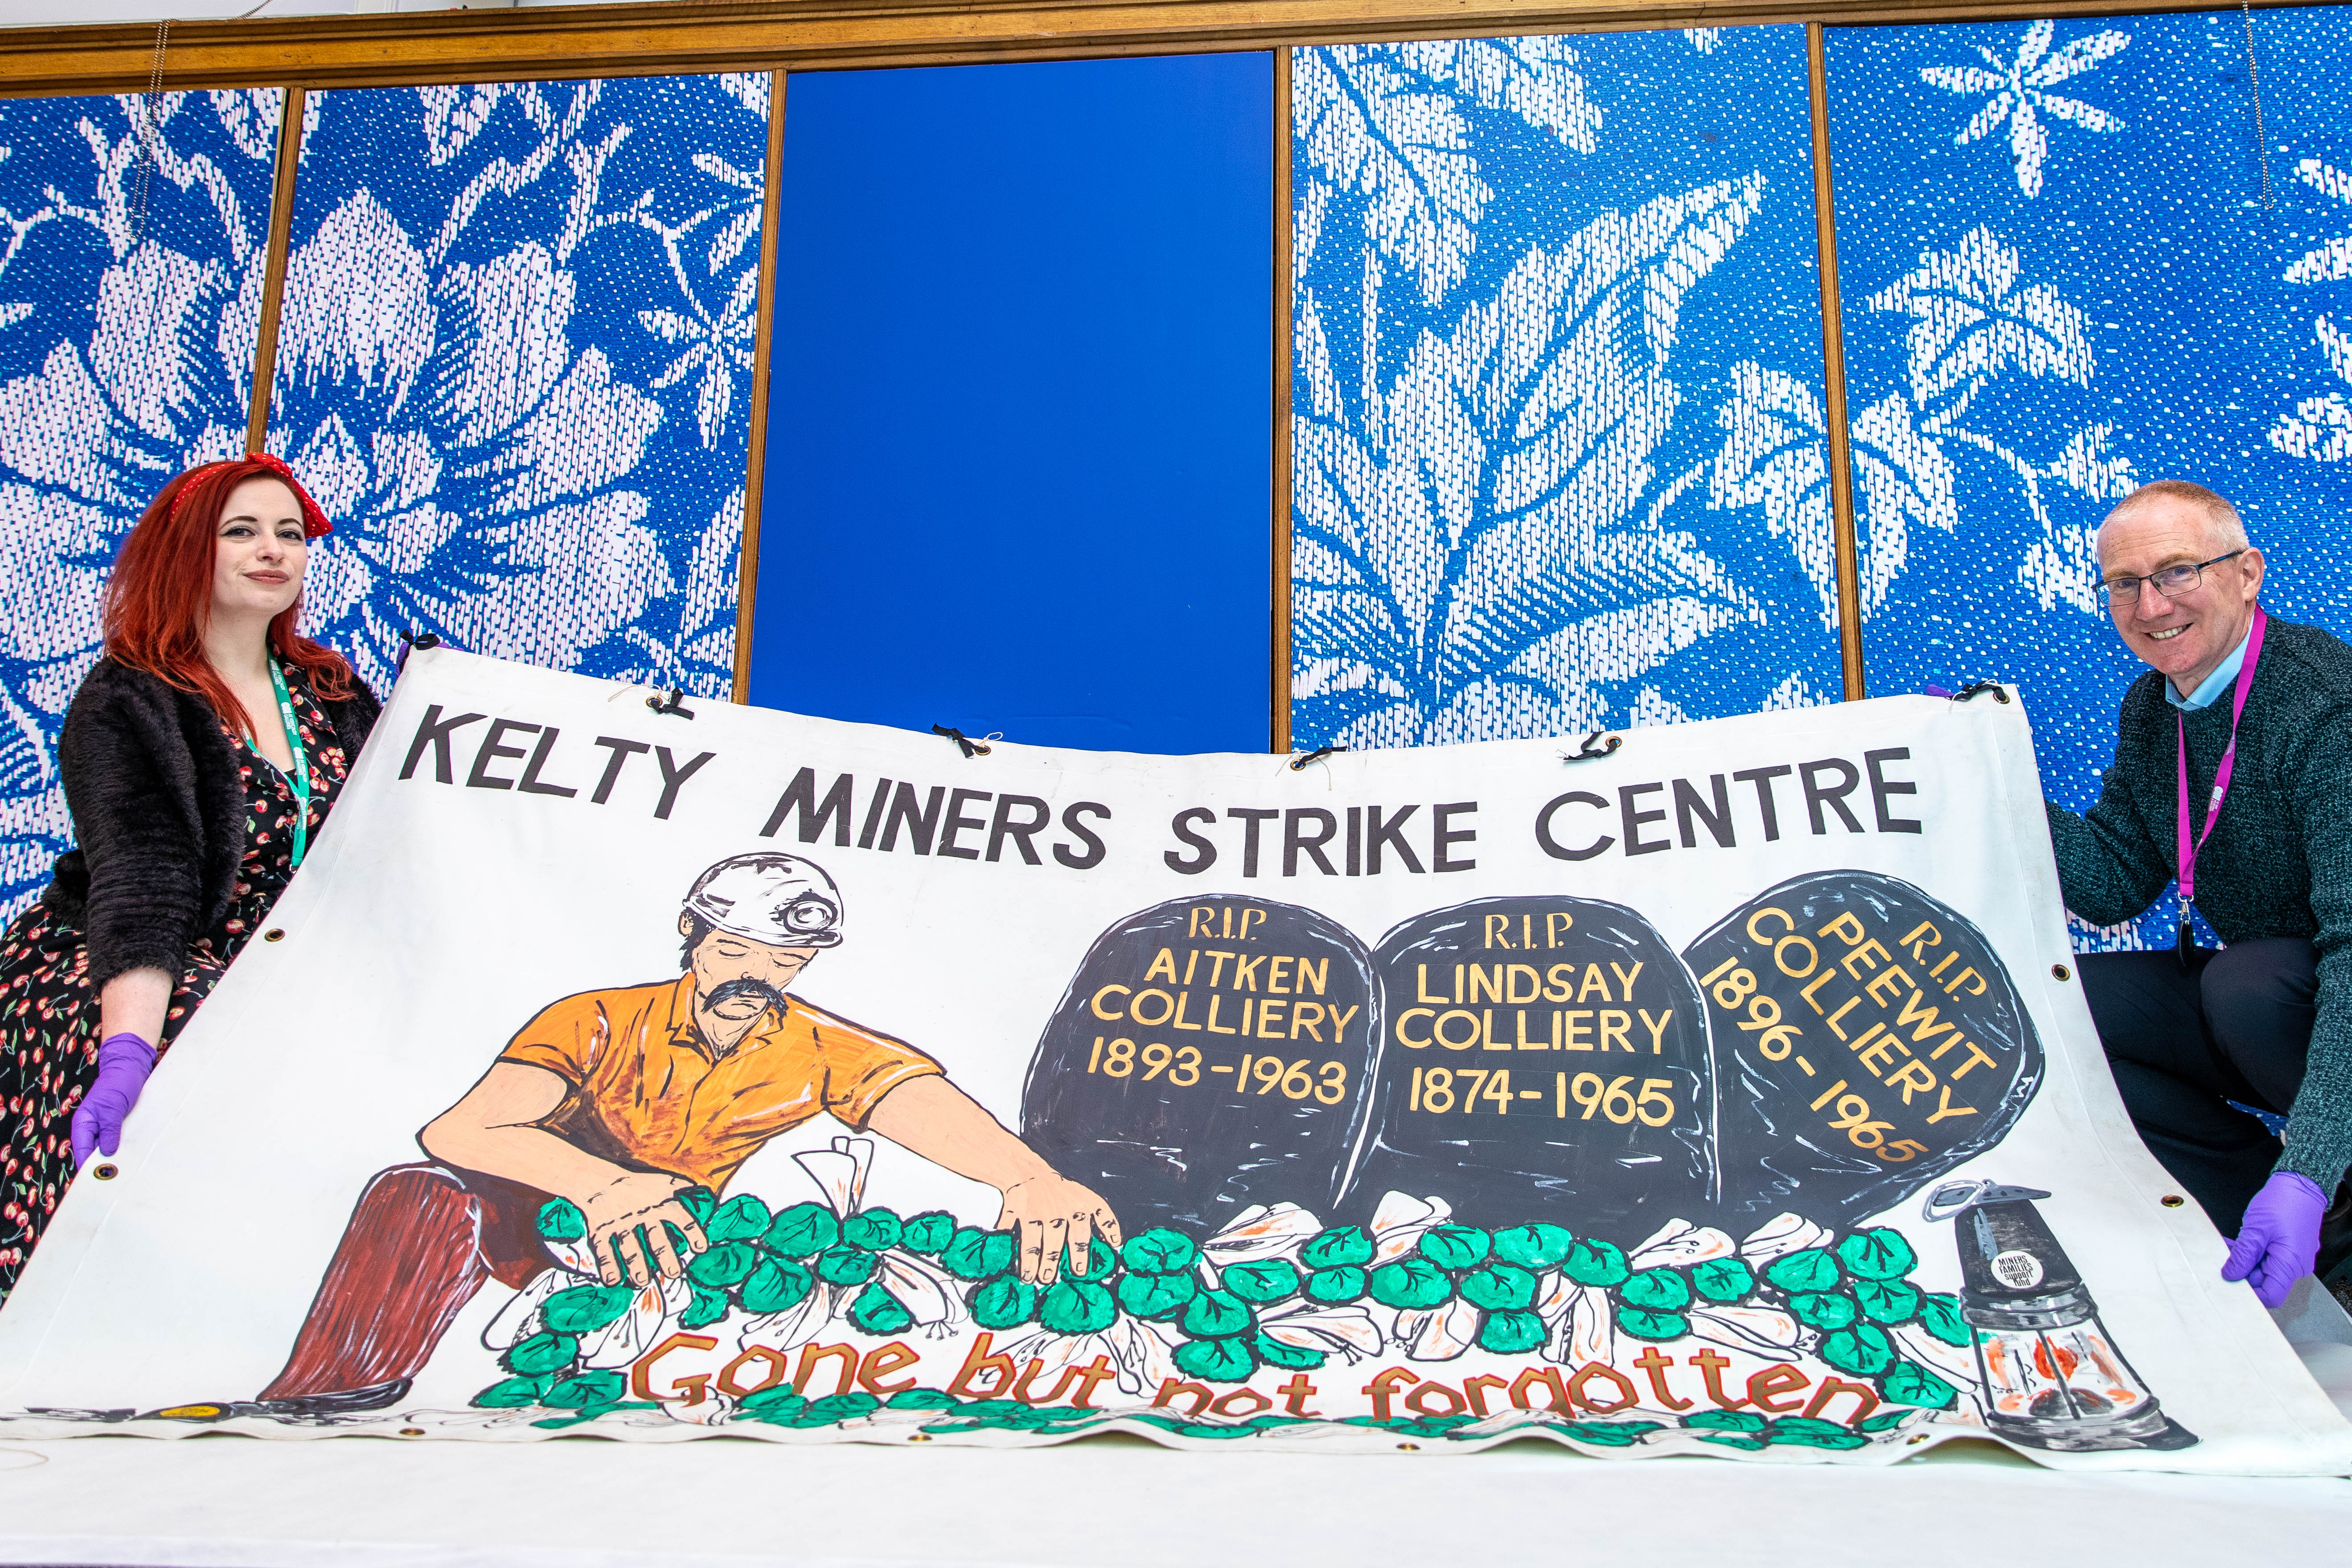 Curators Nicola Wilson and Gavin Grant with one of the mining strike banners ahead of Saturday's conference.